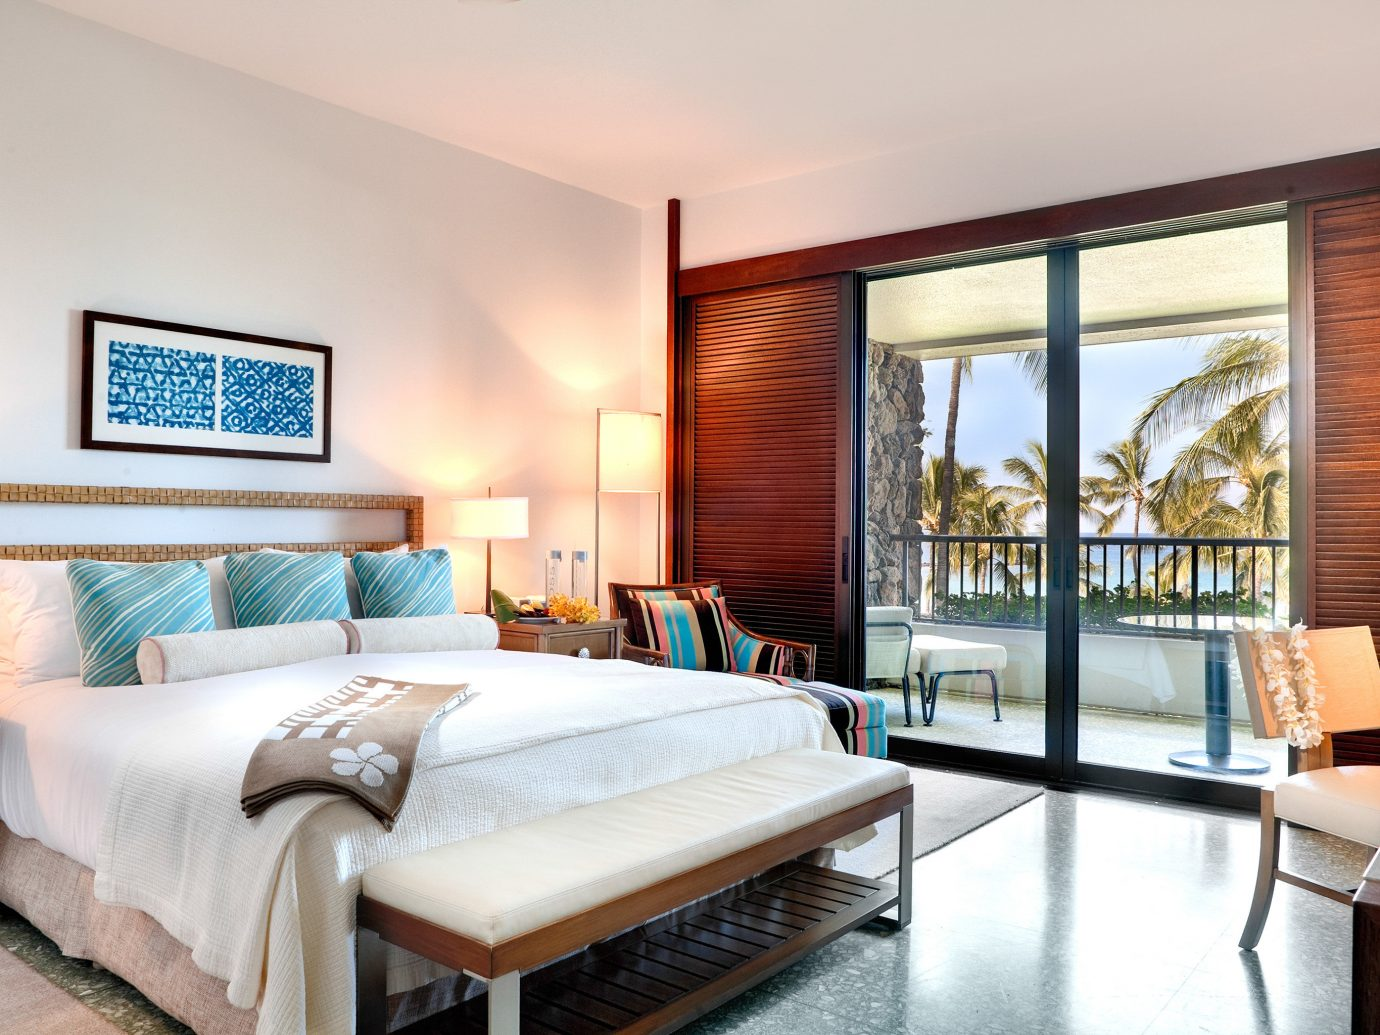 Balcony Beach Bedroom Living Resort Scenic views indoor floor wall sofa room window bed property ceiling estate Suite real estate living room interior design home hardwood condominium Villa cottage furniture decorated